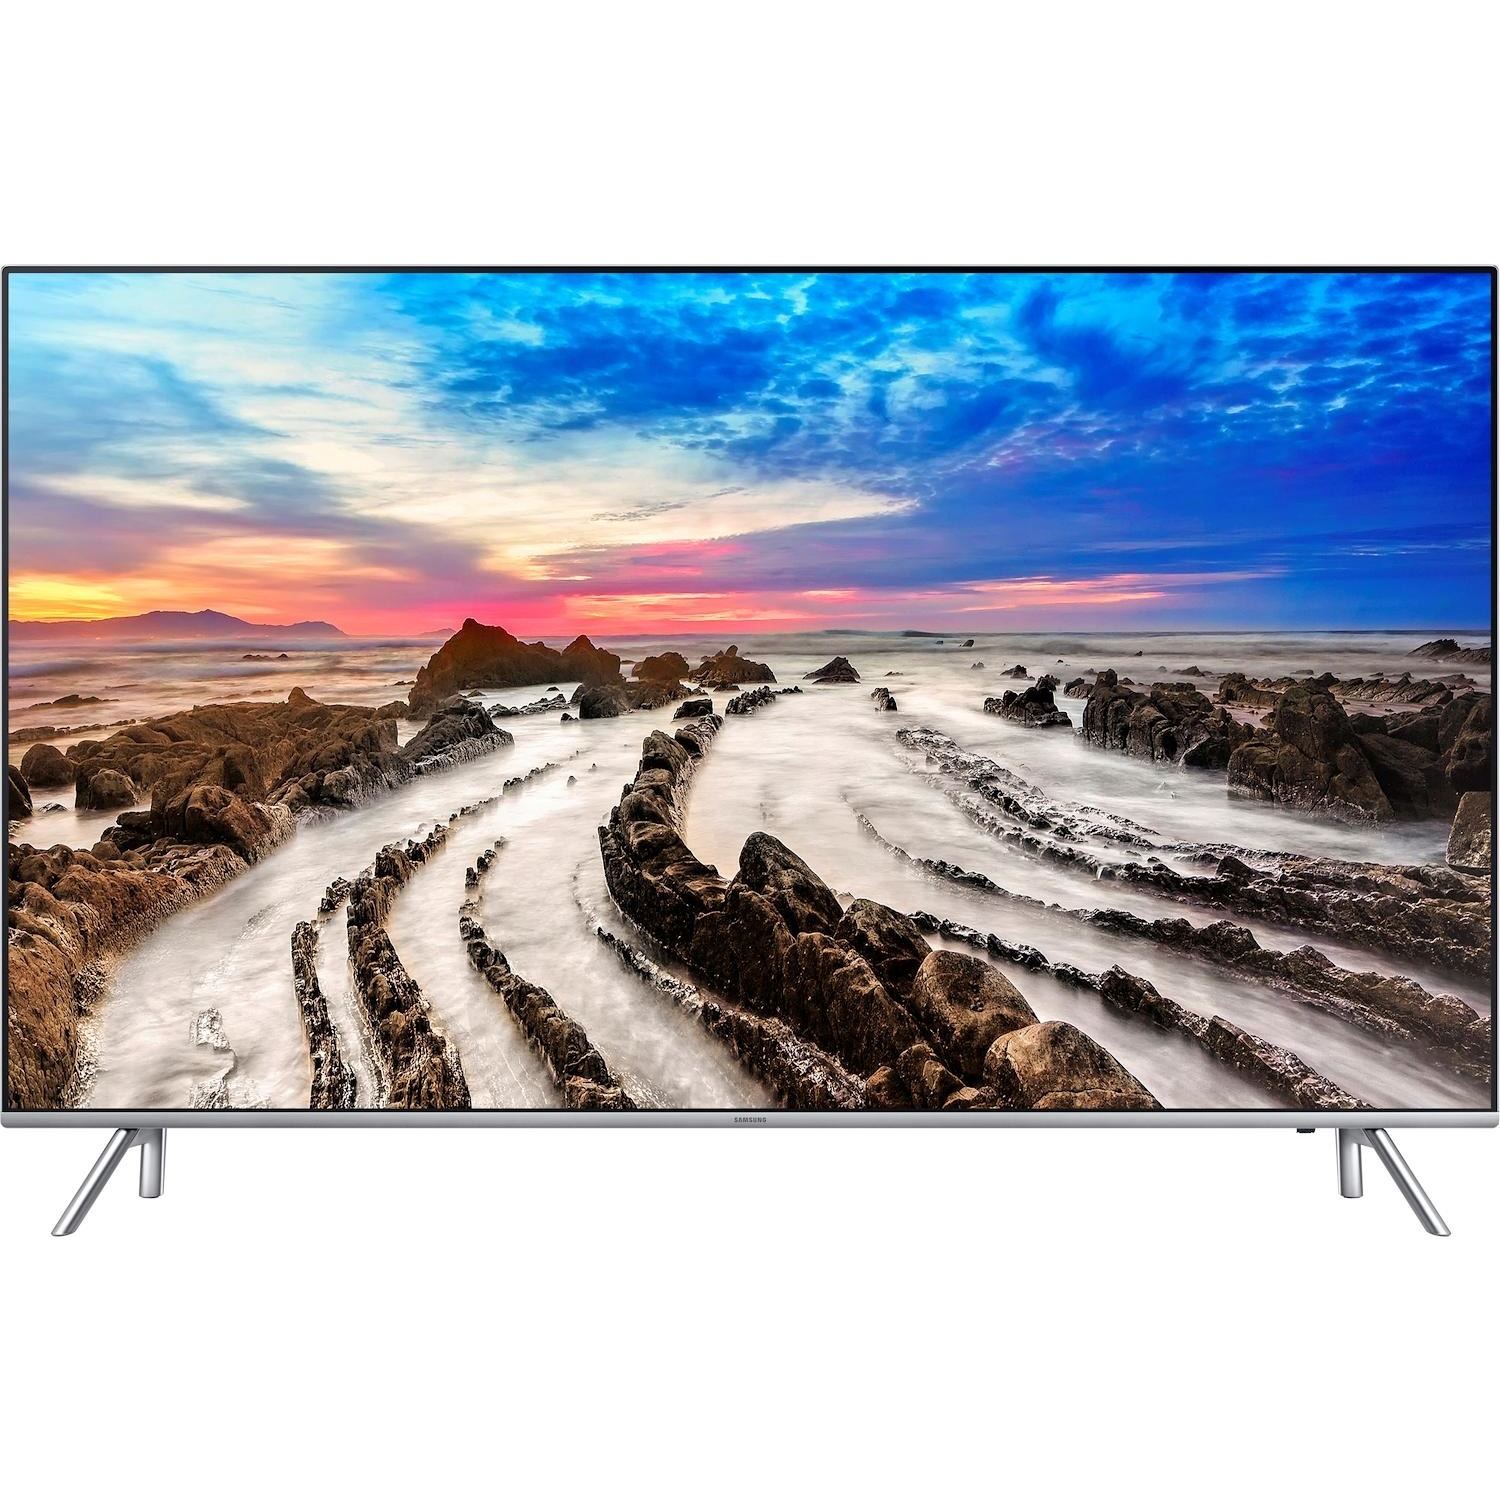 Immagine per TV LED Smart 4K UHD Samsung 75MU7000 da DIMOStore